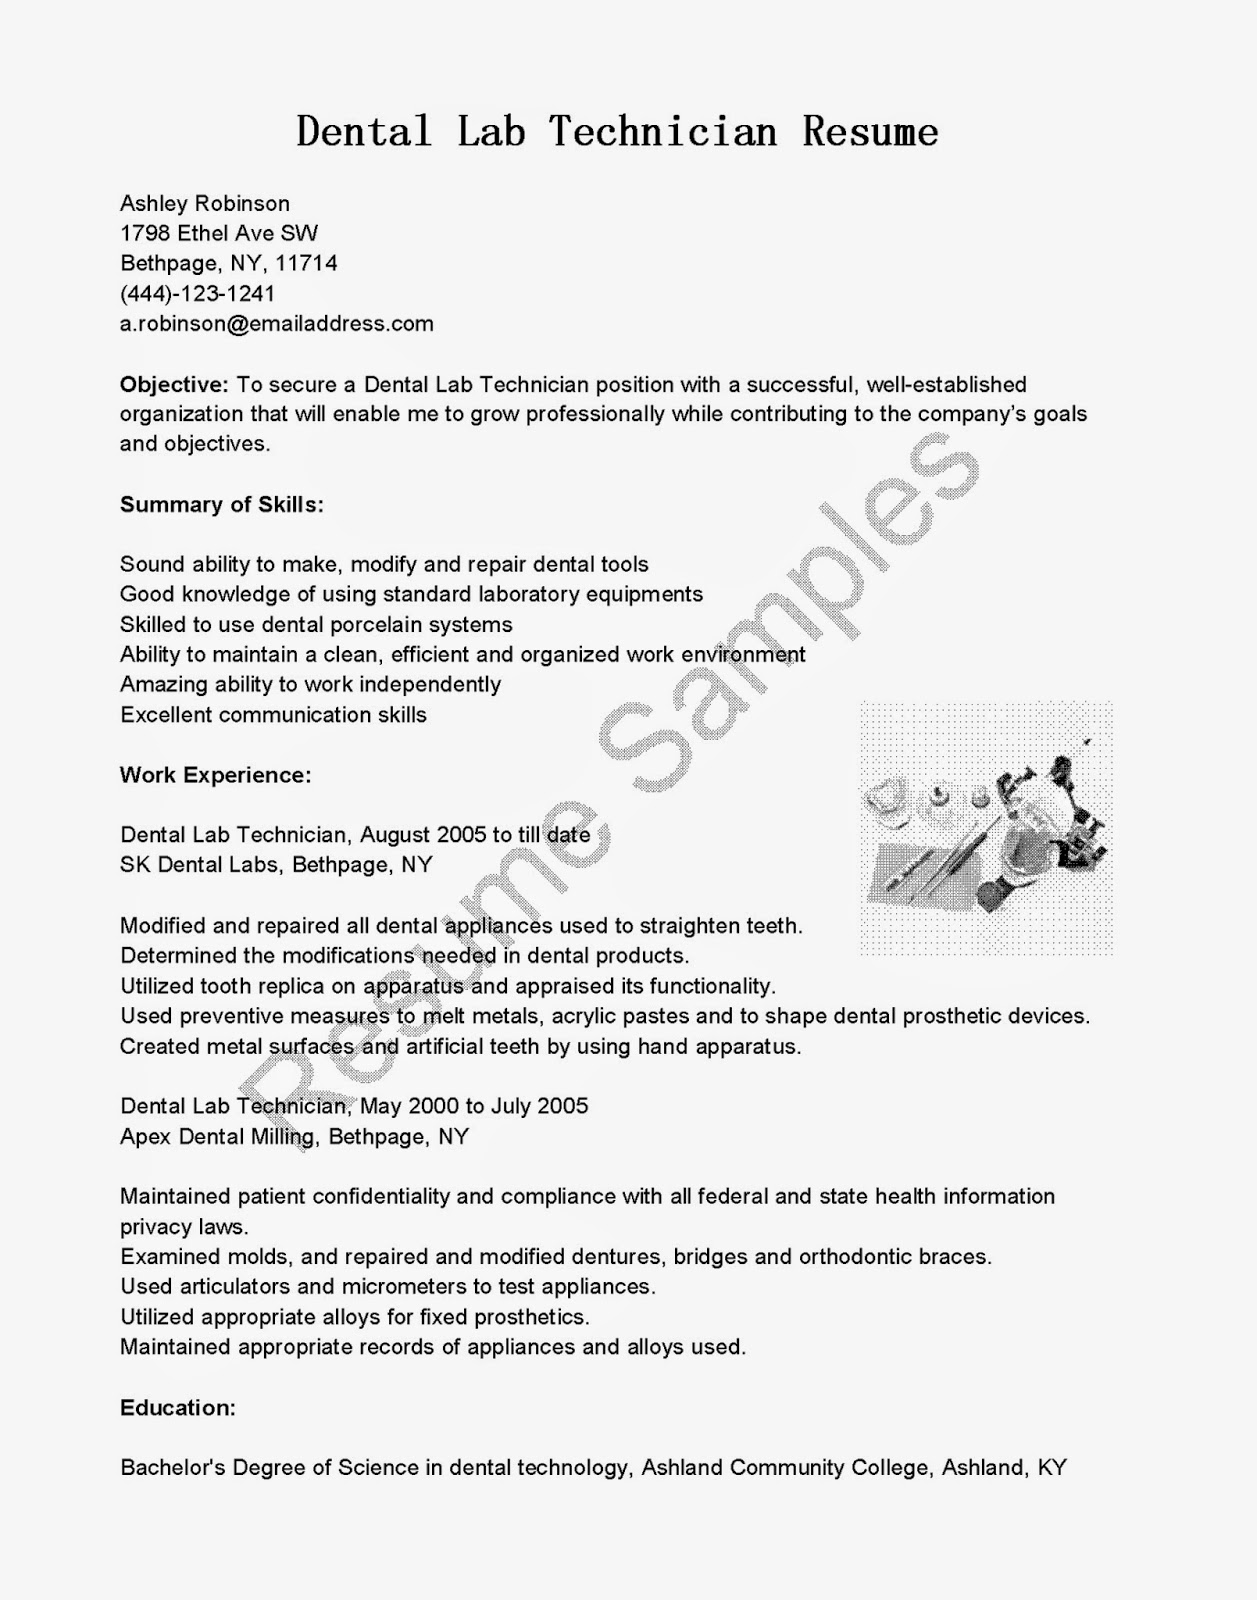 Service technician resume writing – Nurse Tech Resume